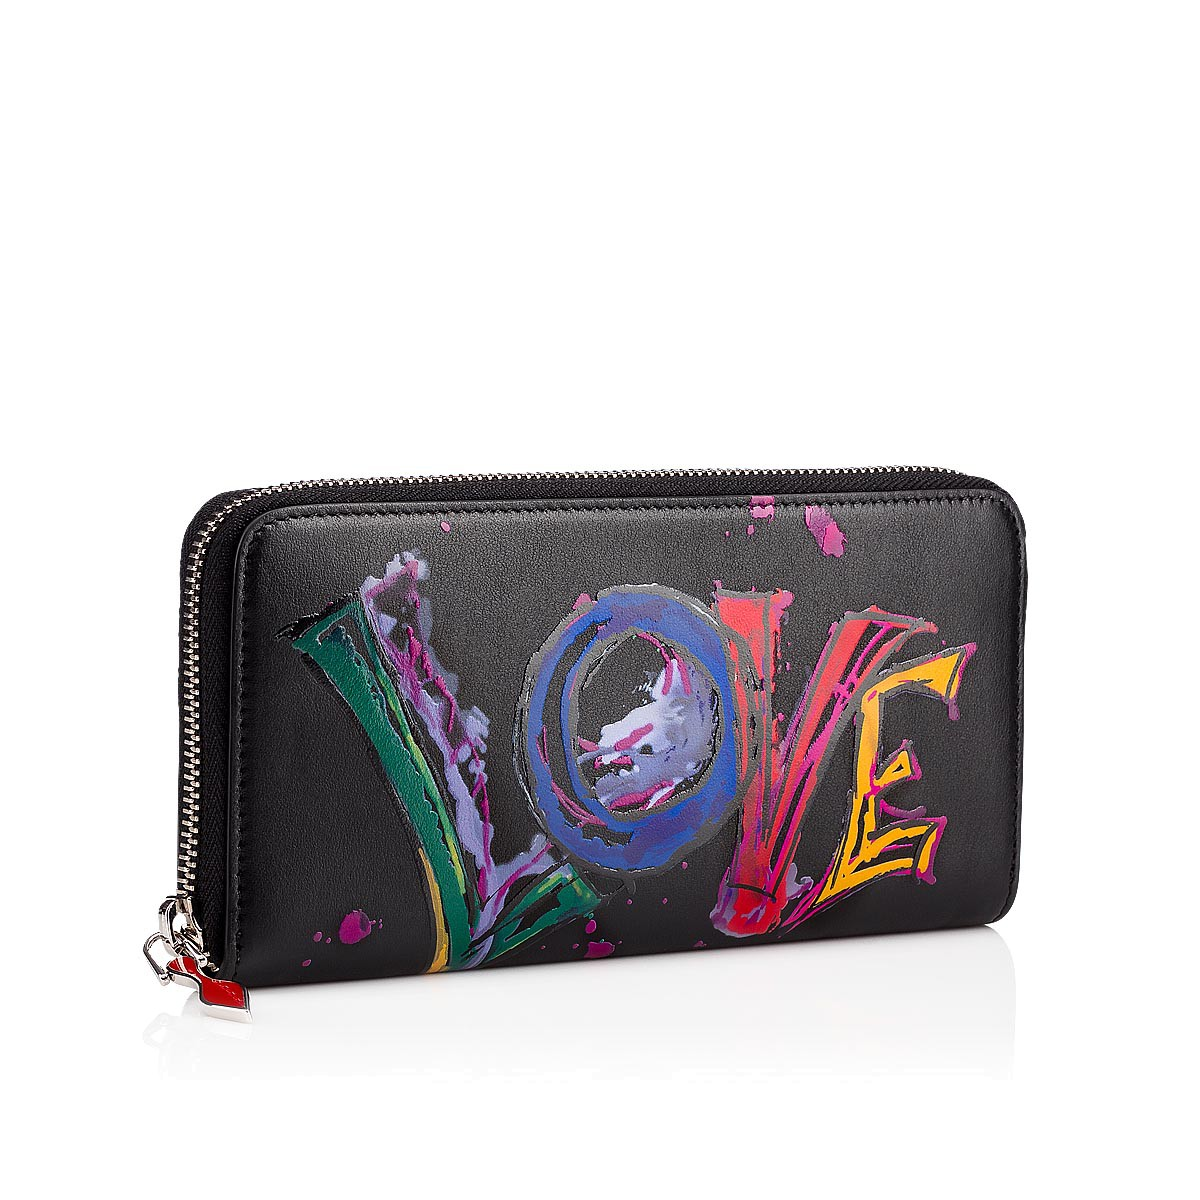 スモールレザーグッズ - Panetton Wallet - Christian Louboutin